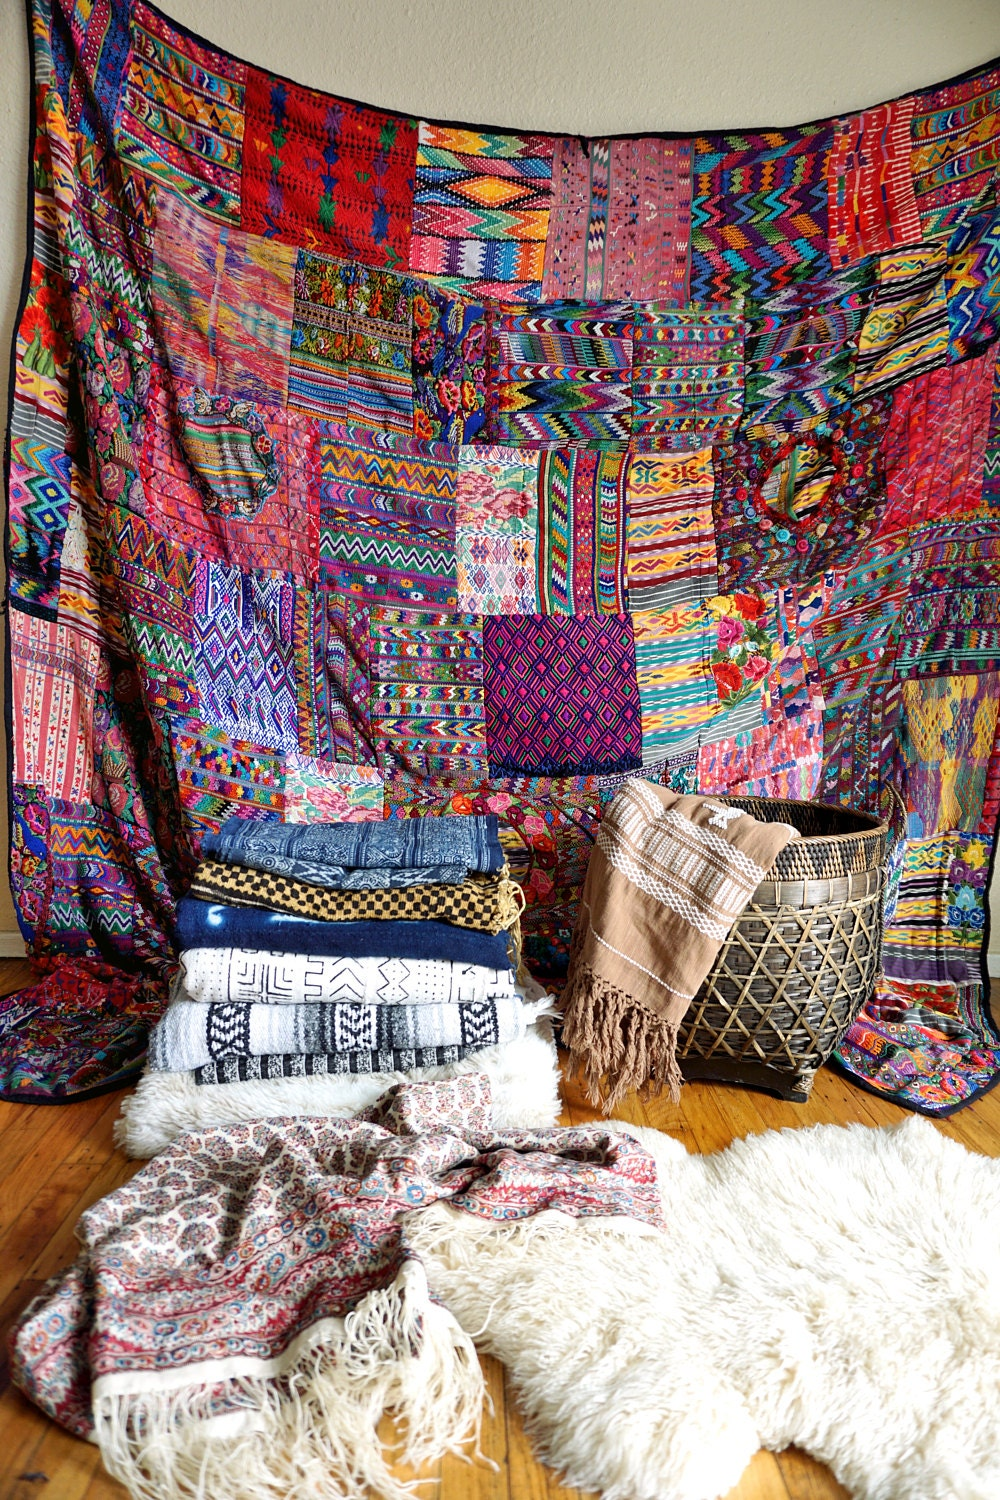 A variety of textiles and rugs for rent